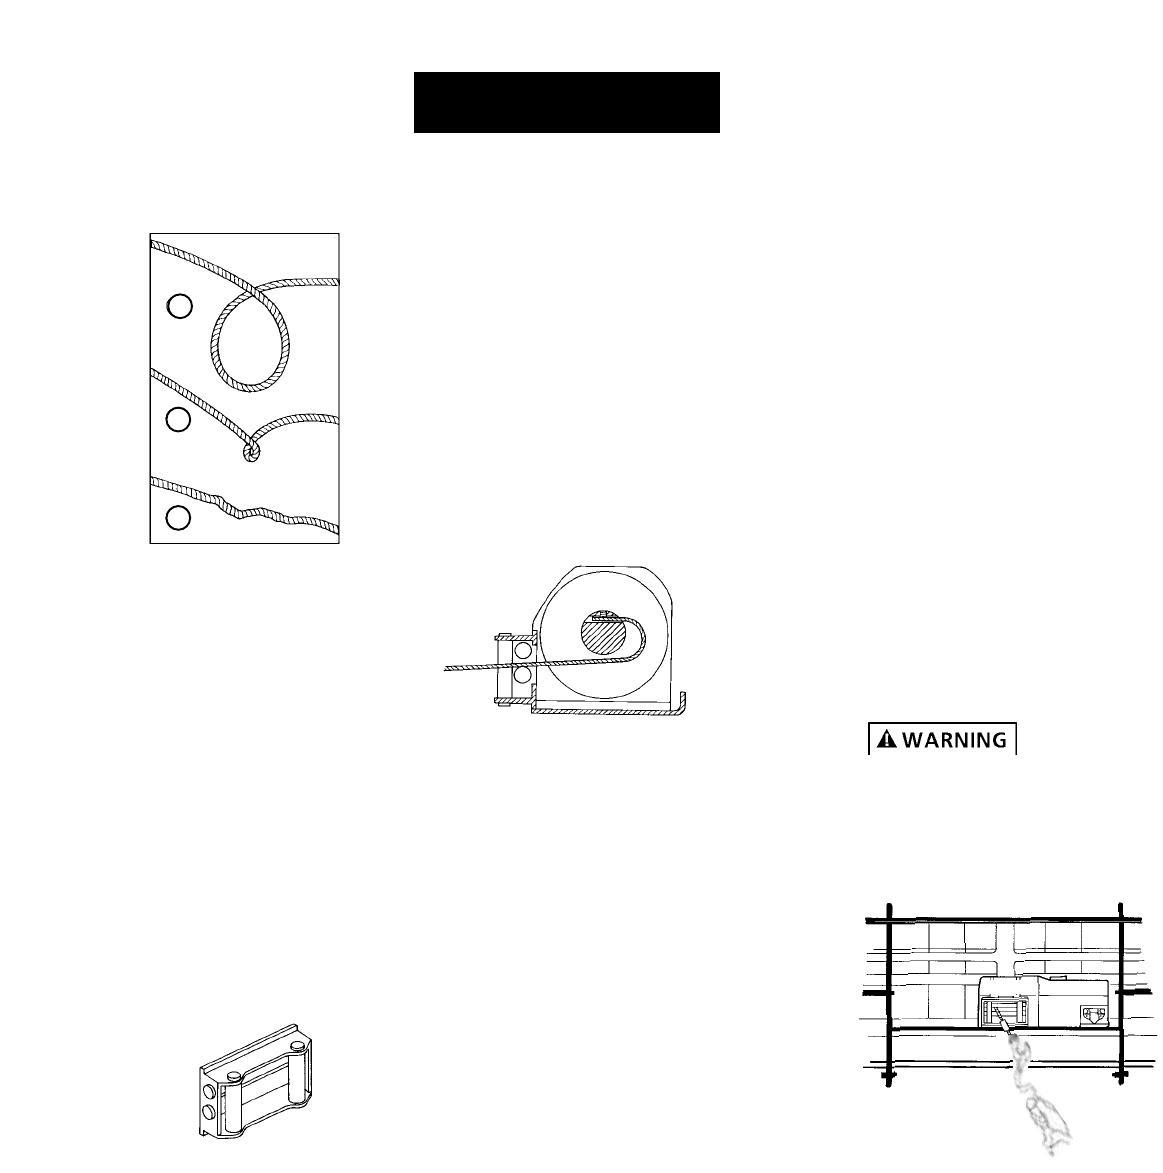 Superwinch S S S Owners Manual Download